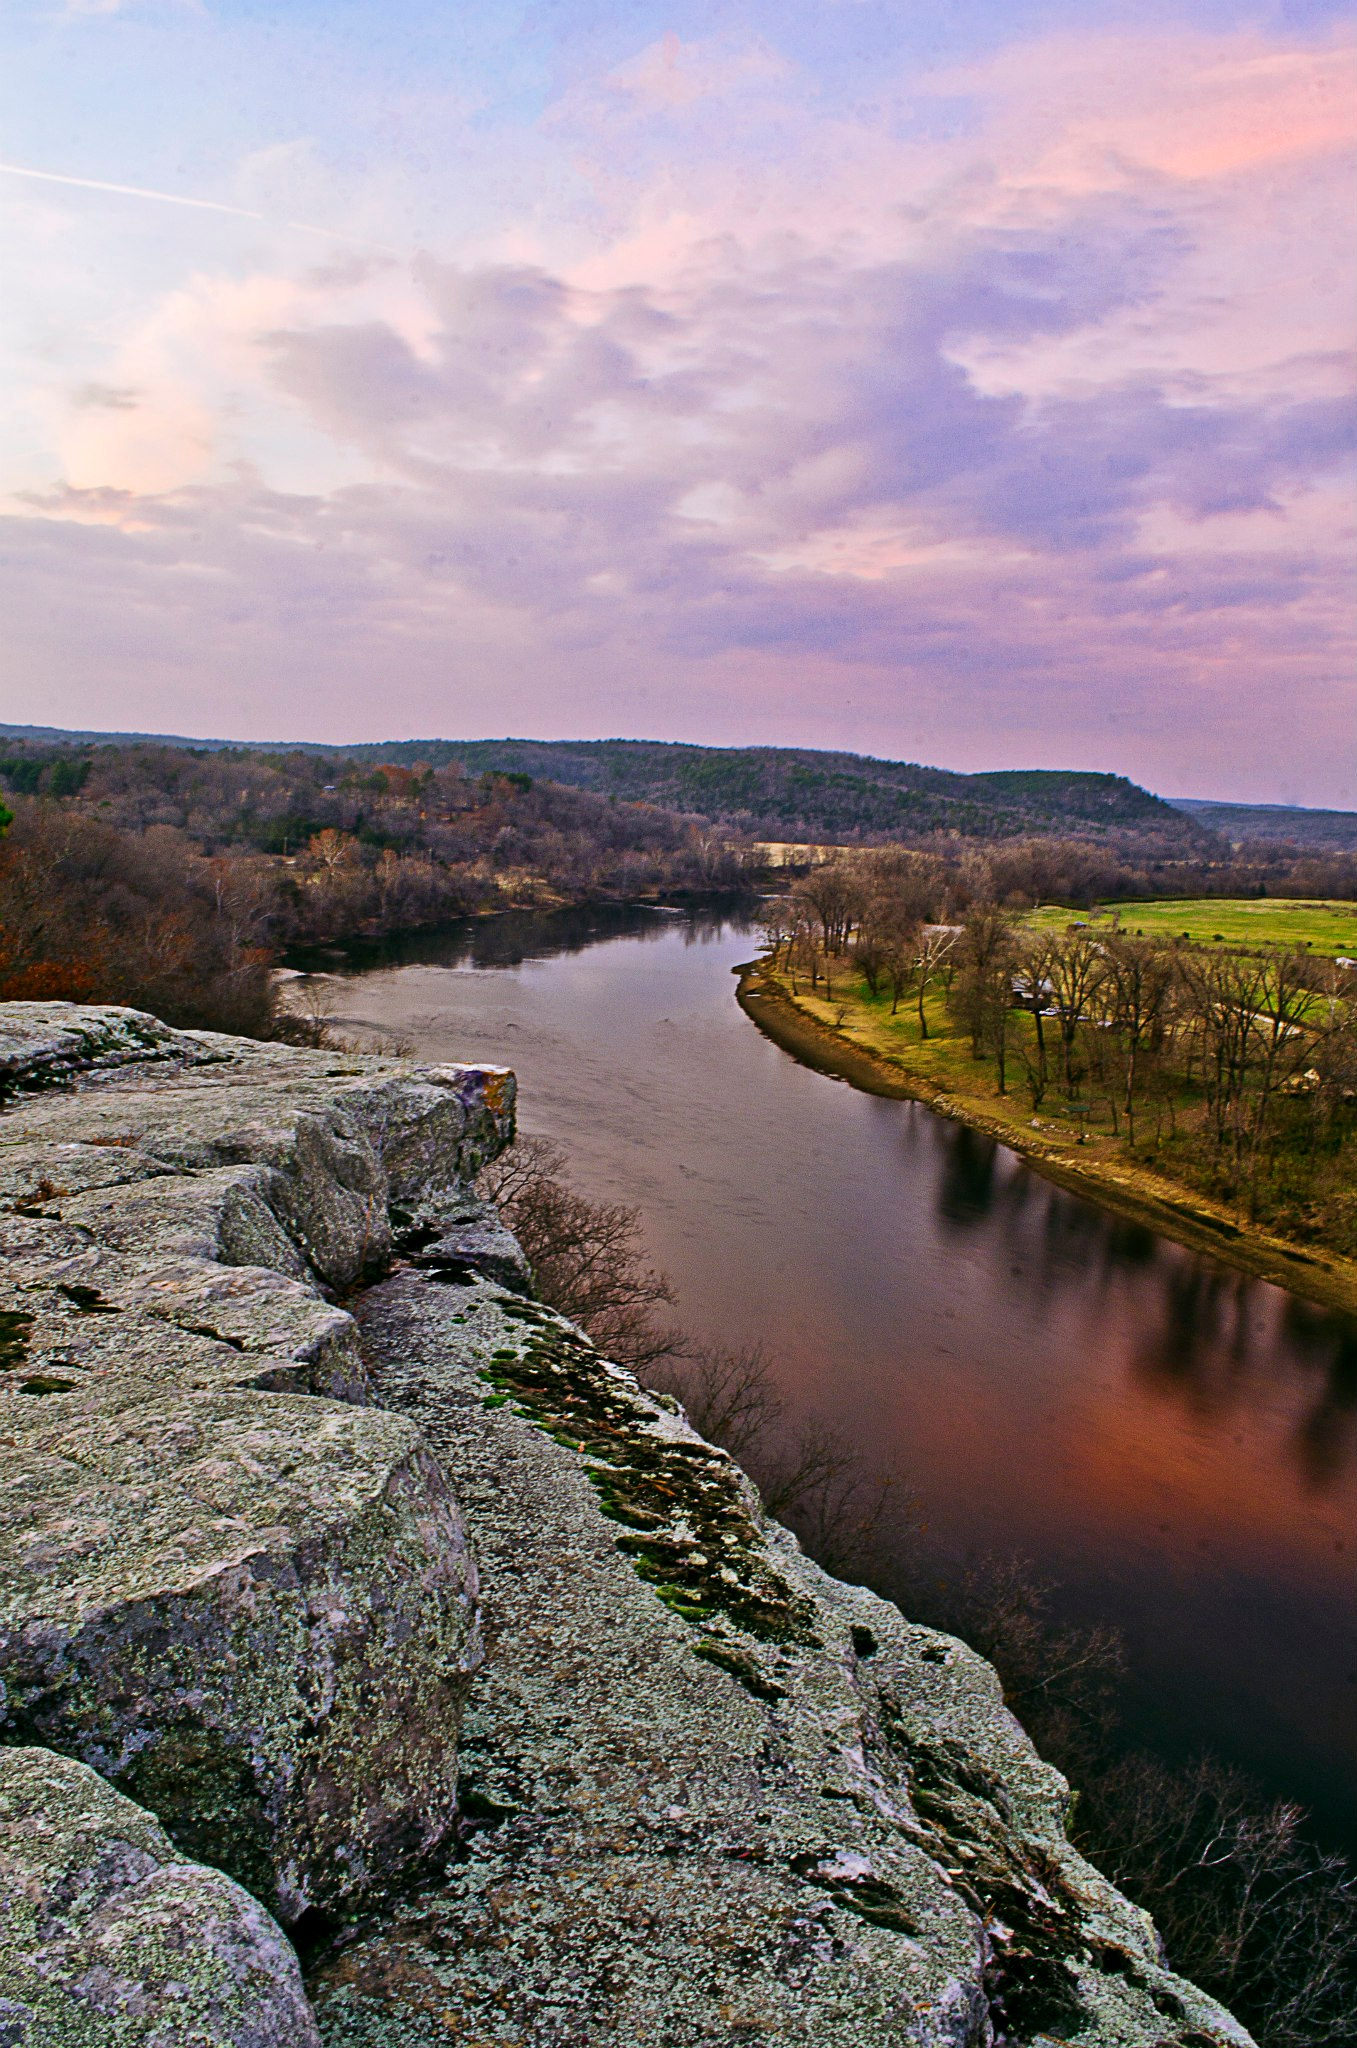 City Rock Bluff overlooking the White River